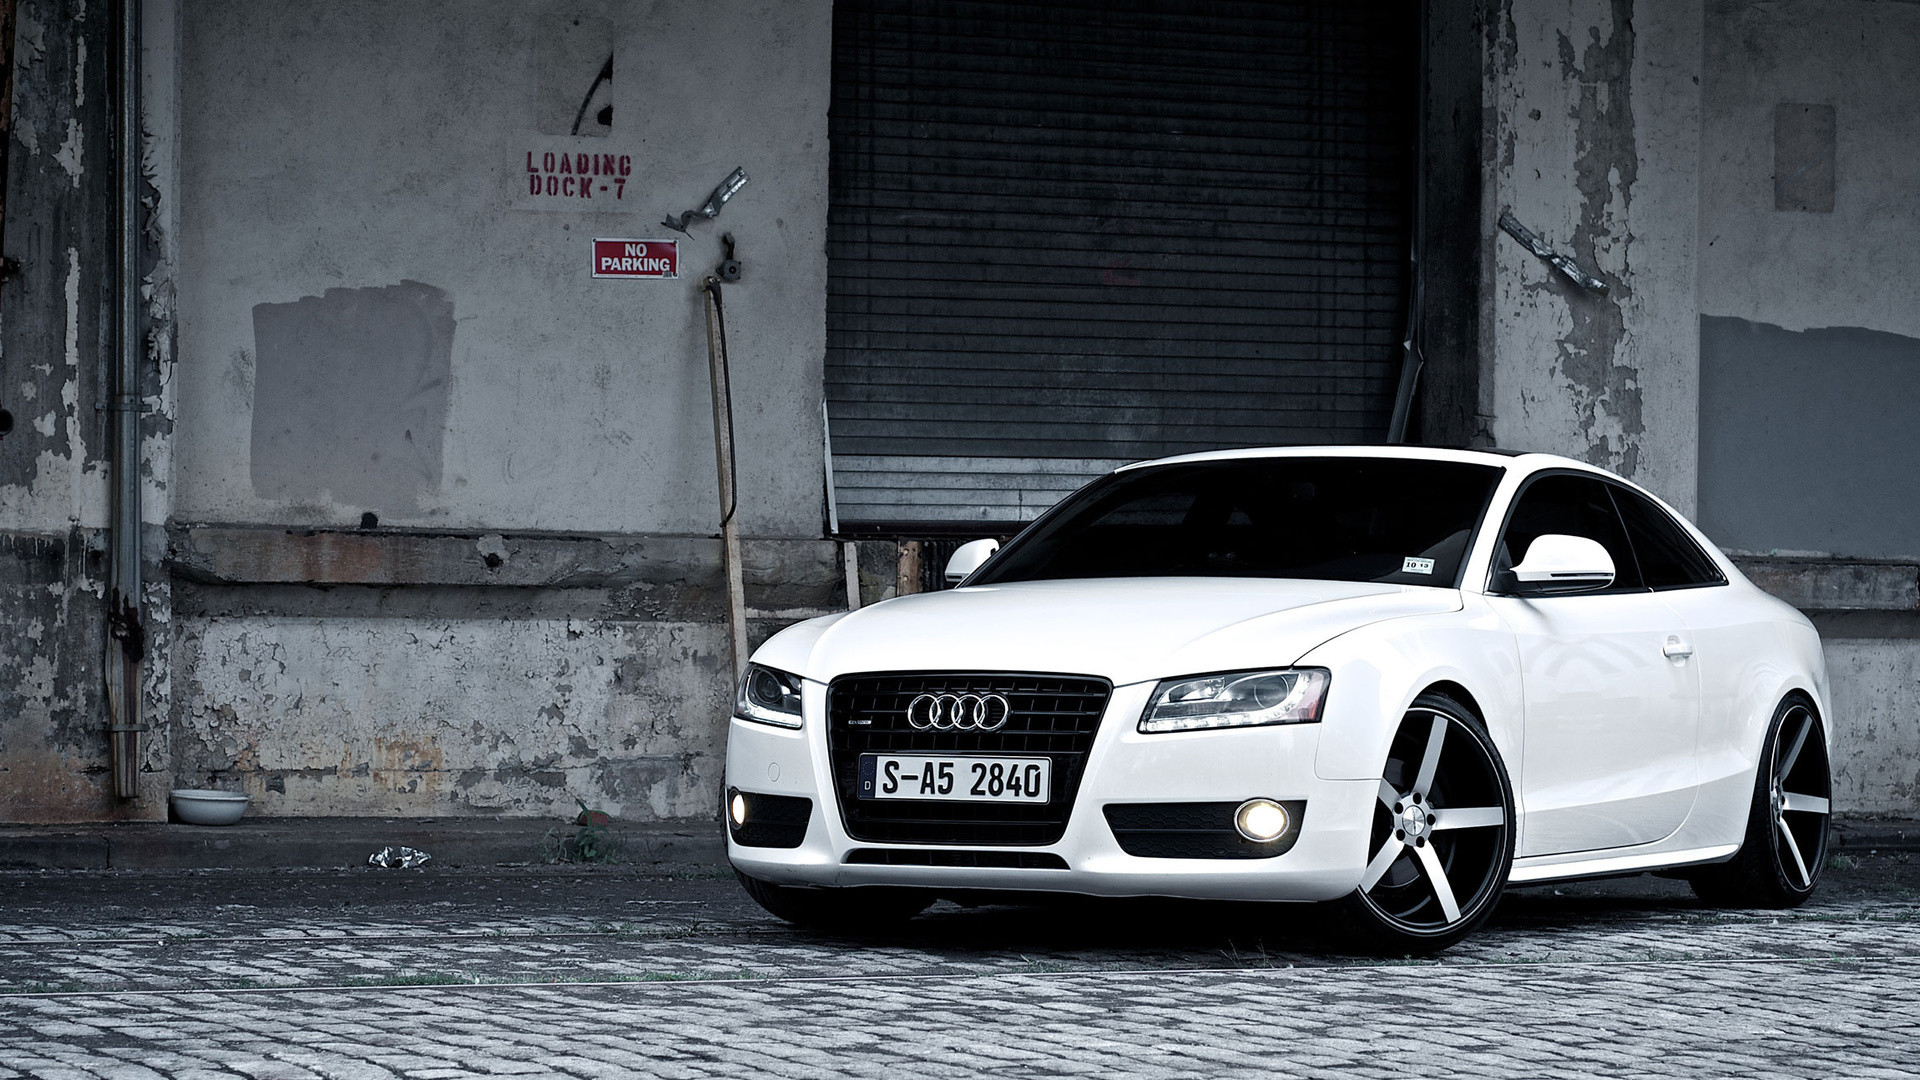 1920x1080 Audi S5 Wallpapers For Iphone